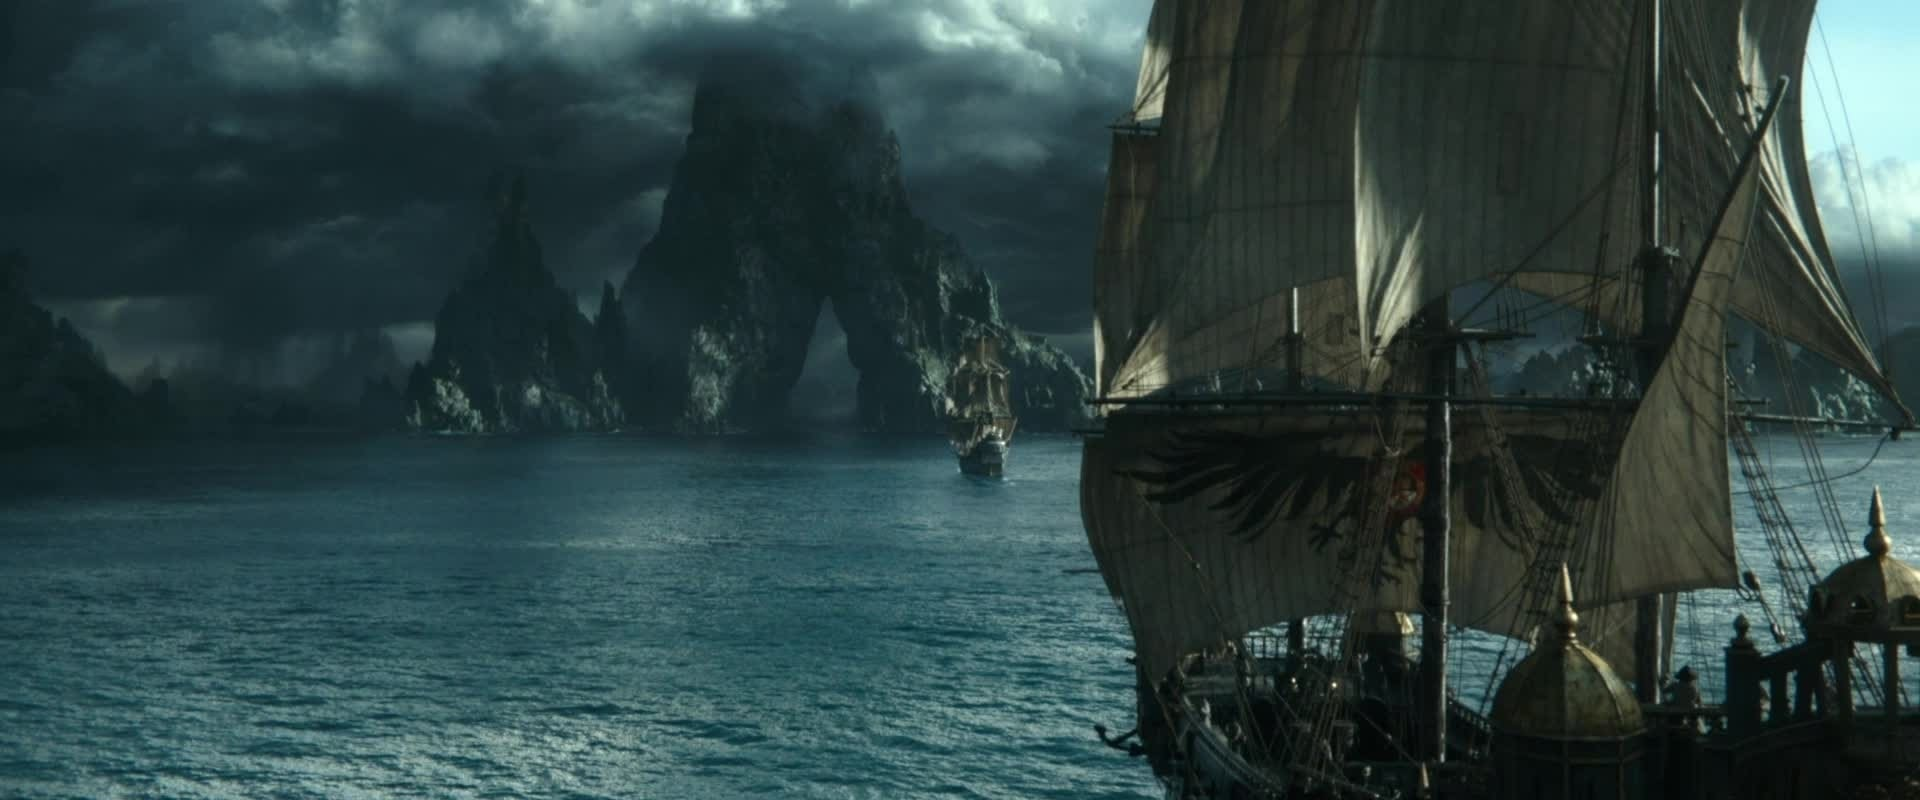 Pirates of the Caribbean: Salazar's Revenge Teaser Trailer